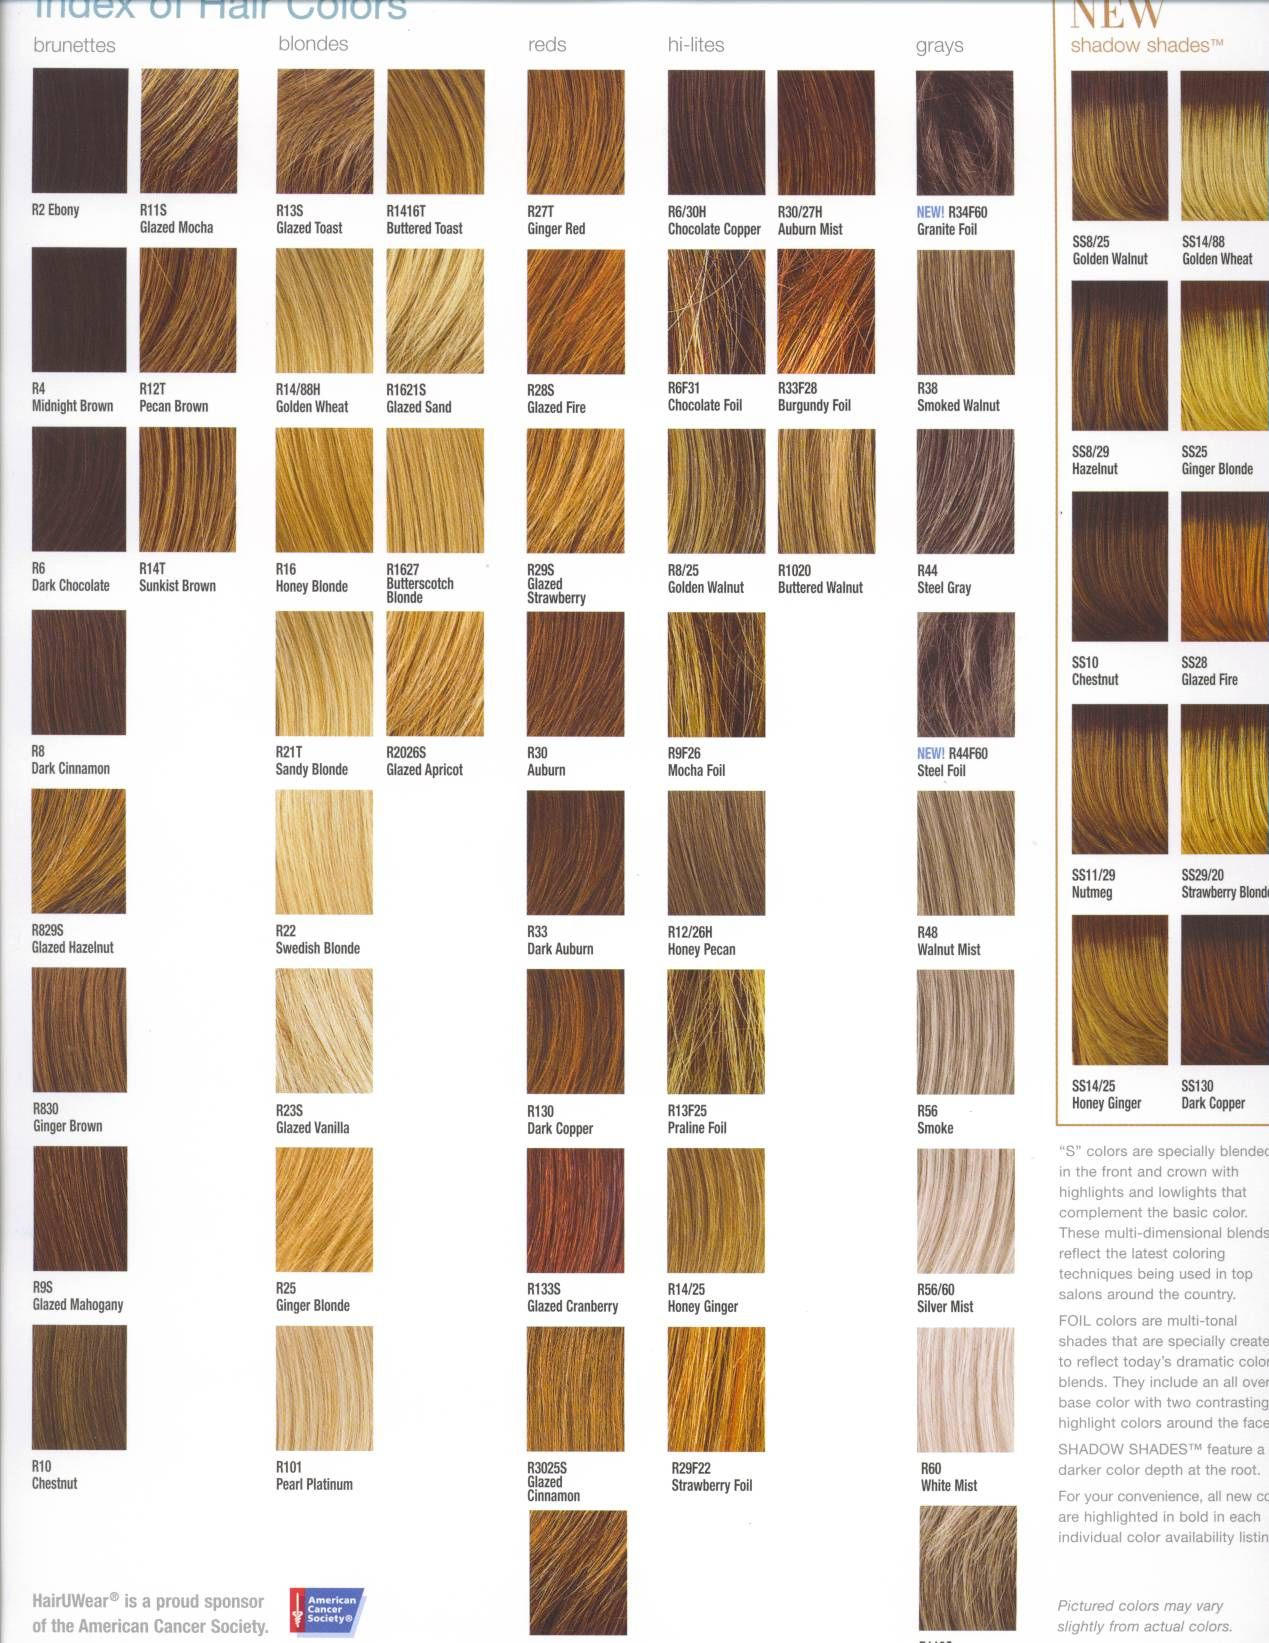 Best 25  Hair color names ideas on Pinterest  Color names chart, Hair dye color chart and Pink